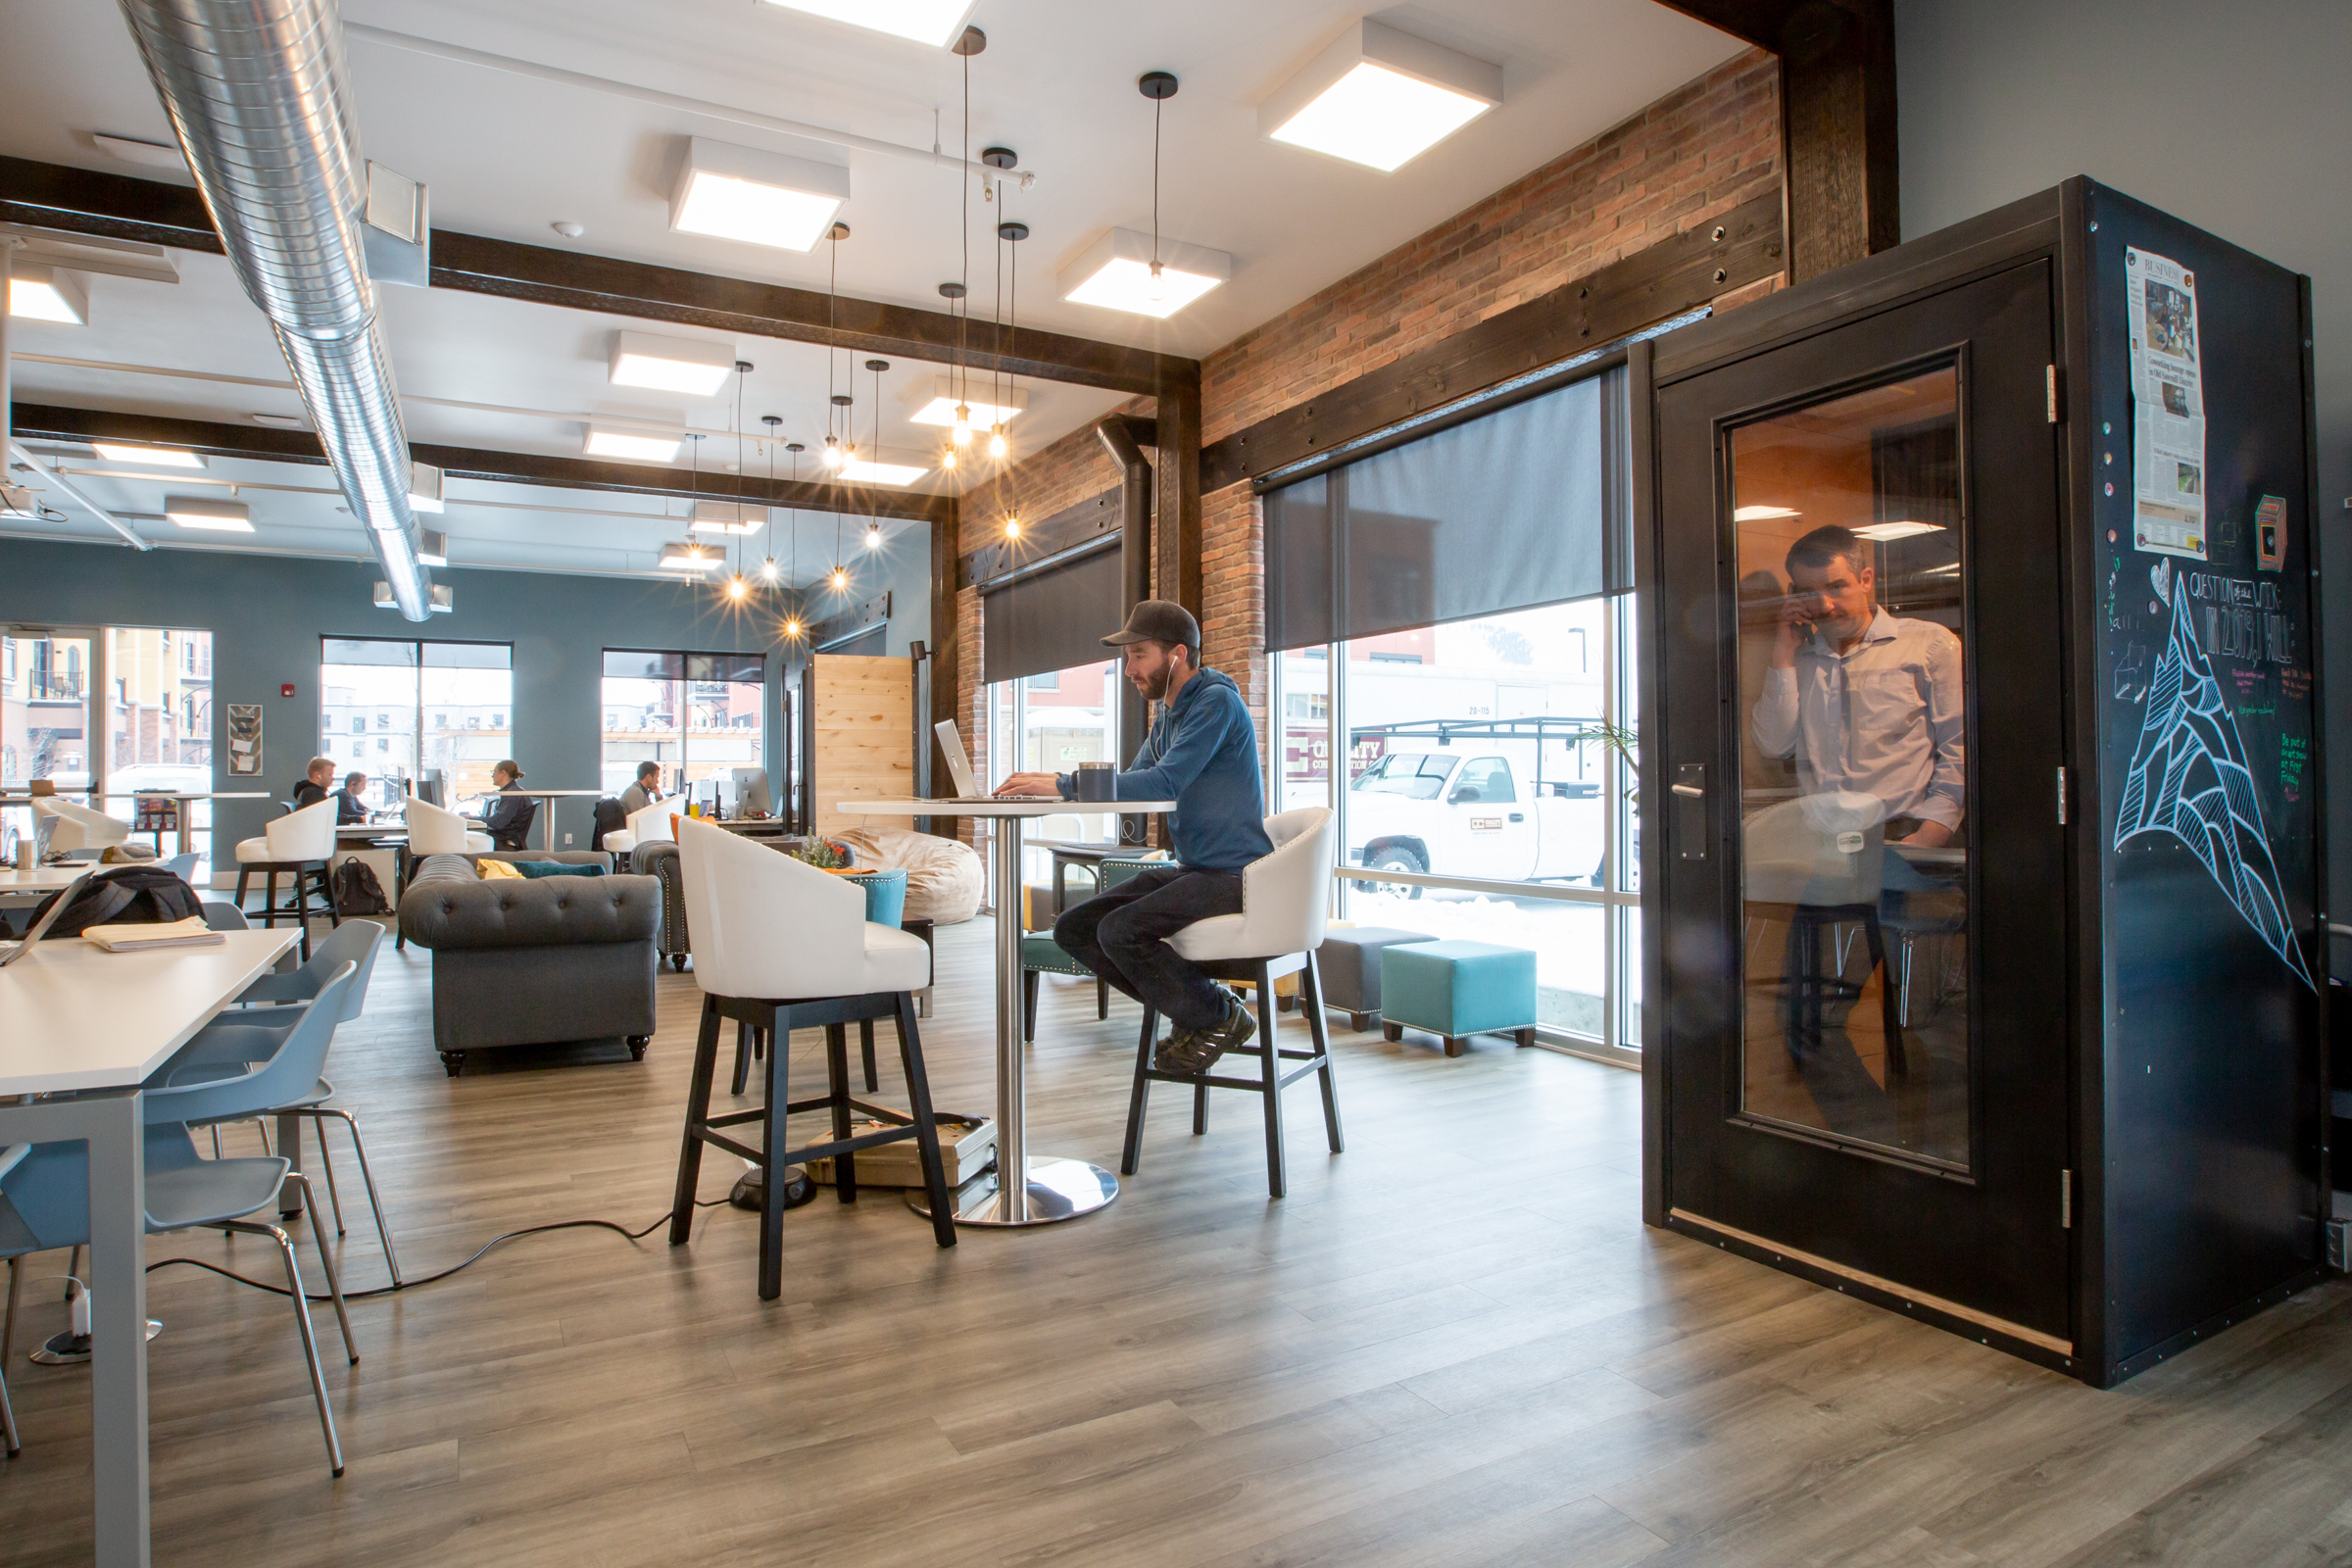 Coworking Space in Montana named C3 WorkLounge shared workspace